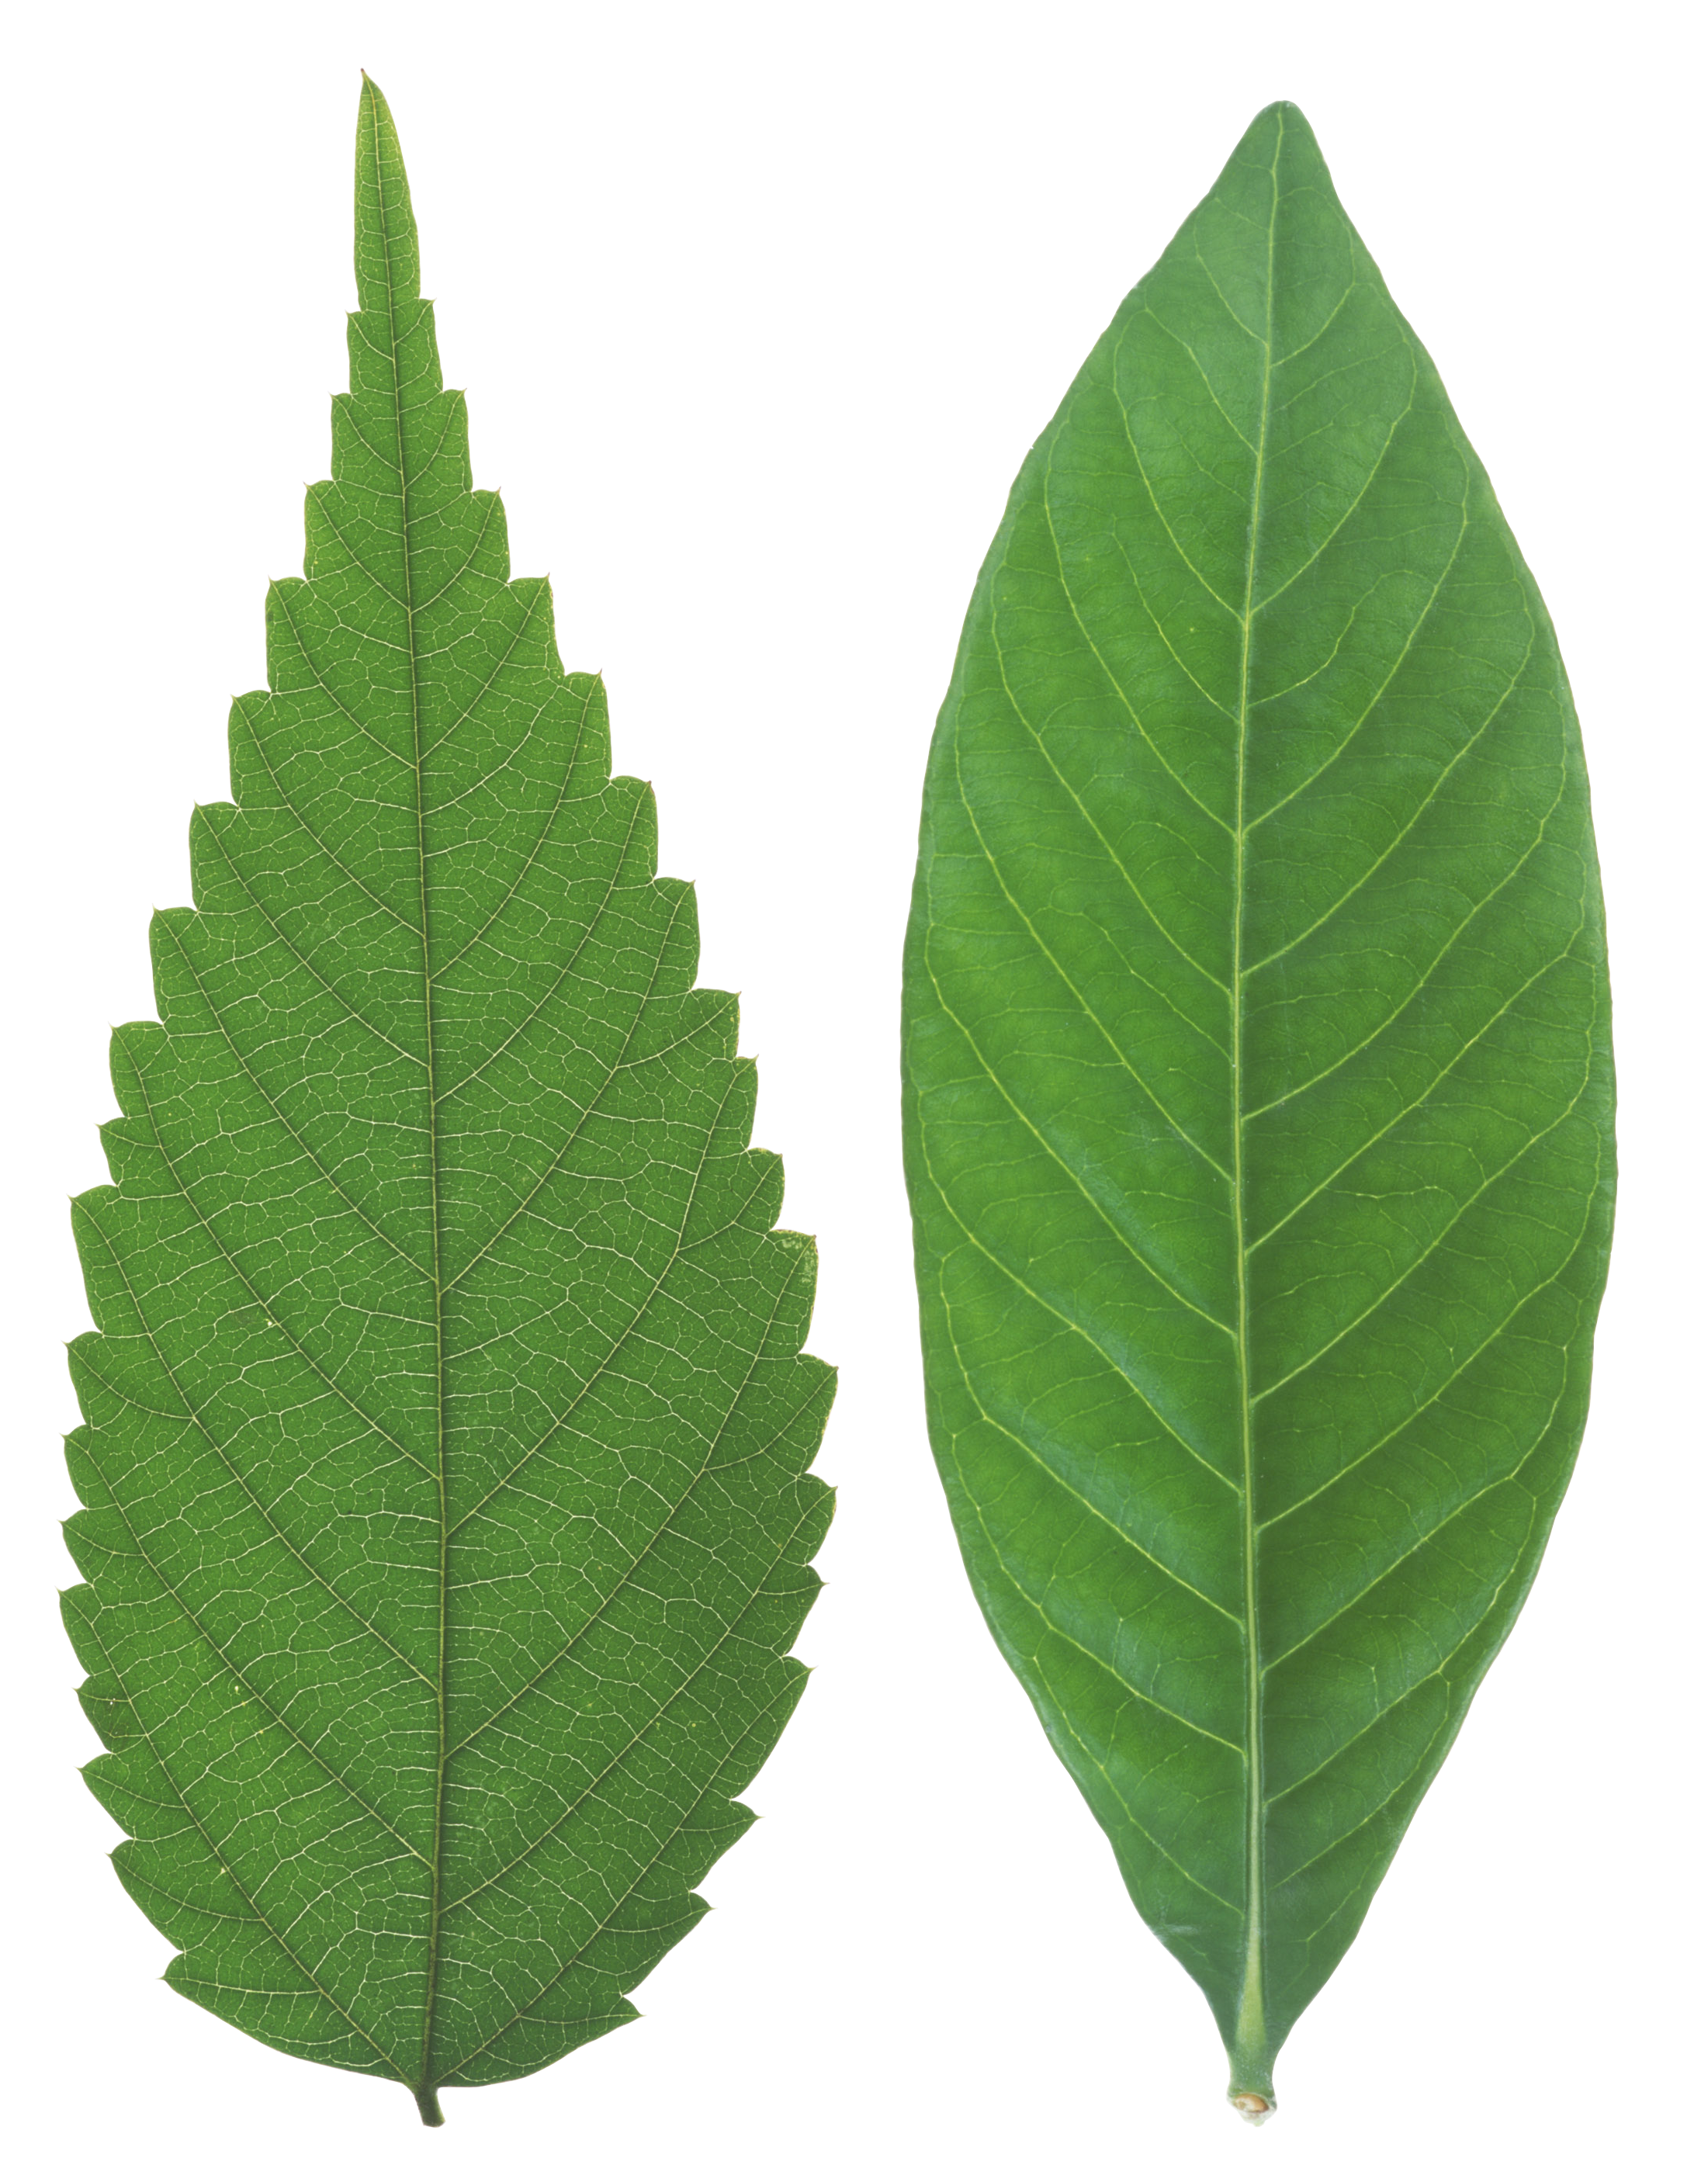 Leaf texture png. Green leaves images free